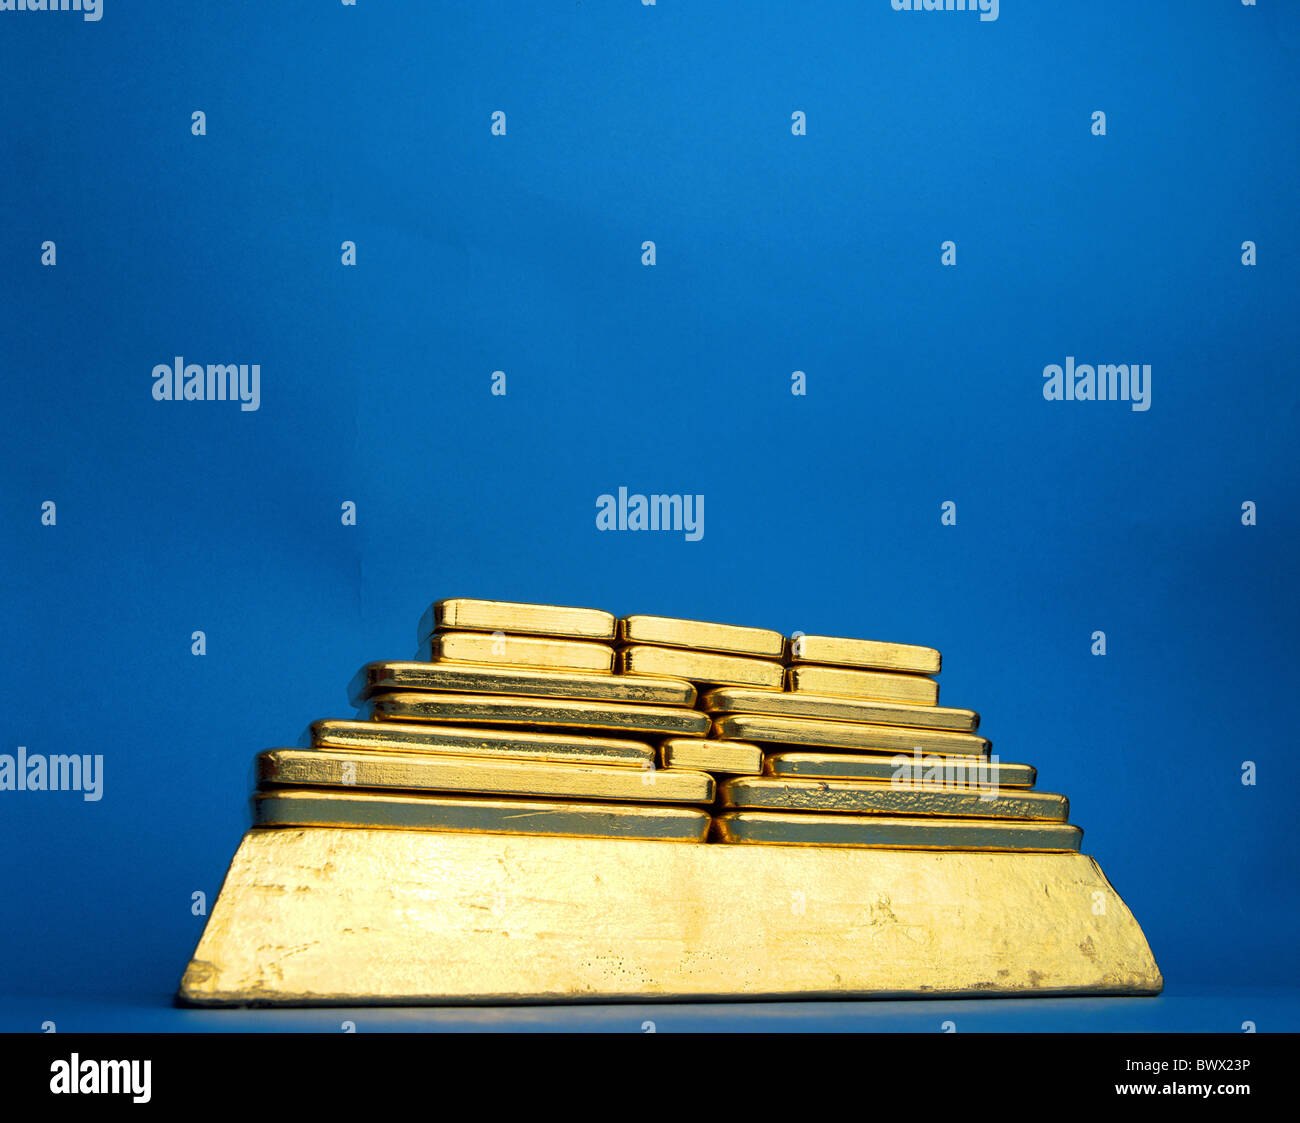 stacked up piled up money gold bank blue background gold bar pyramid - Stock Image